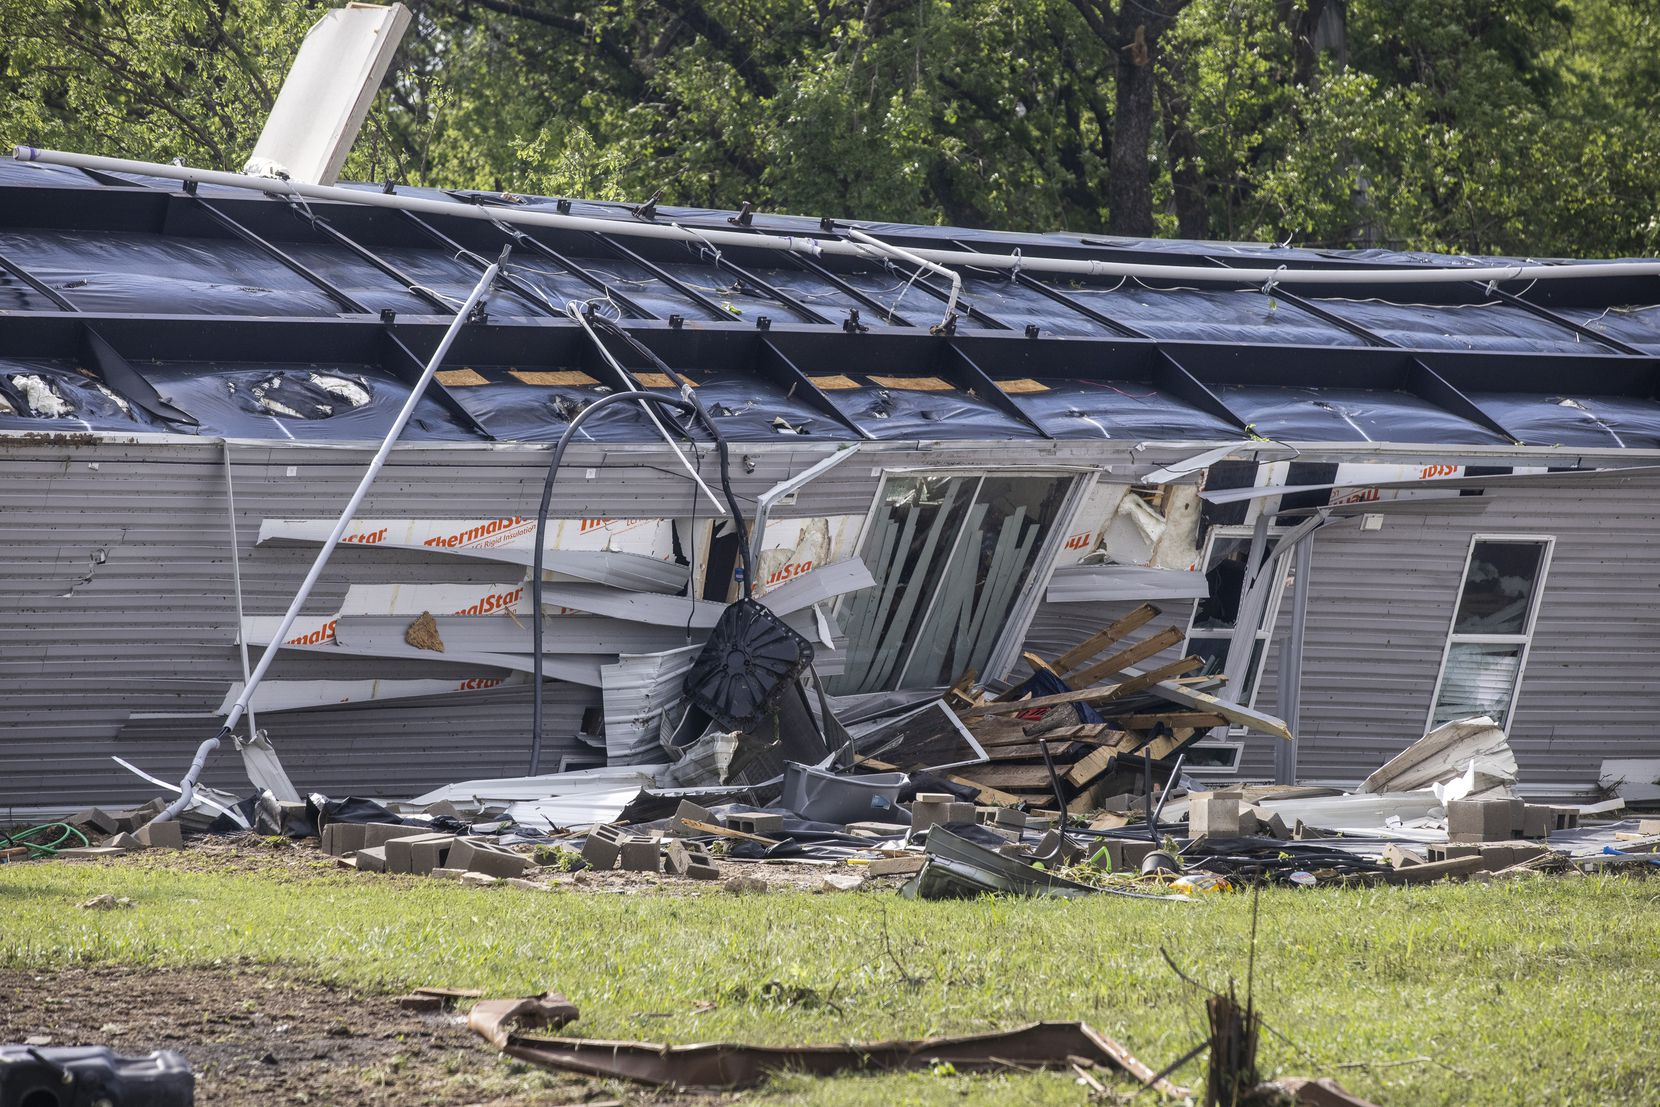 A mobile home was turned upside down in the aftermath of a Monday night tornado that touched down just south of Waxahachie, Texas, on Tuesday, May 4, 2021. (Lynda M. González/The Dallas Morning News)